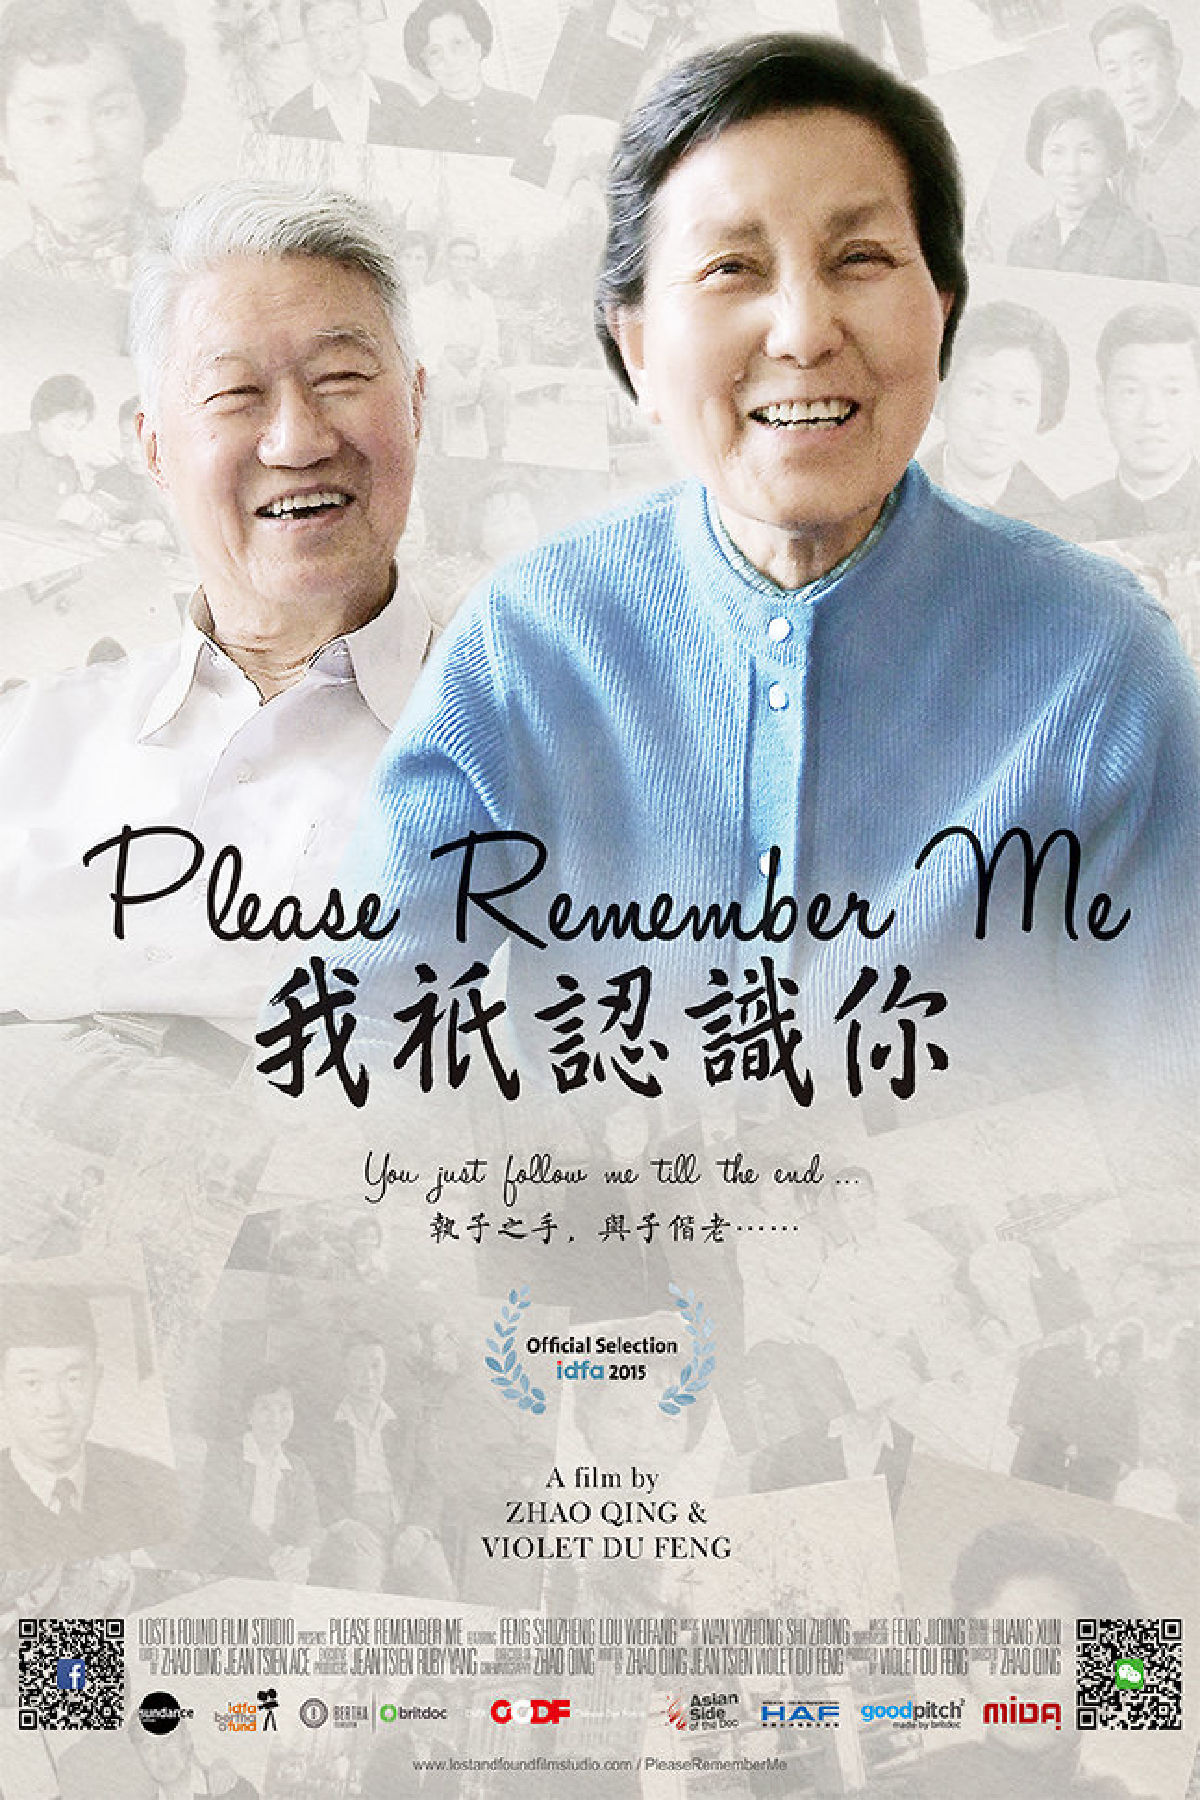 'Please Remember Me' movie poster